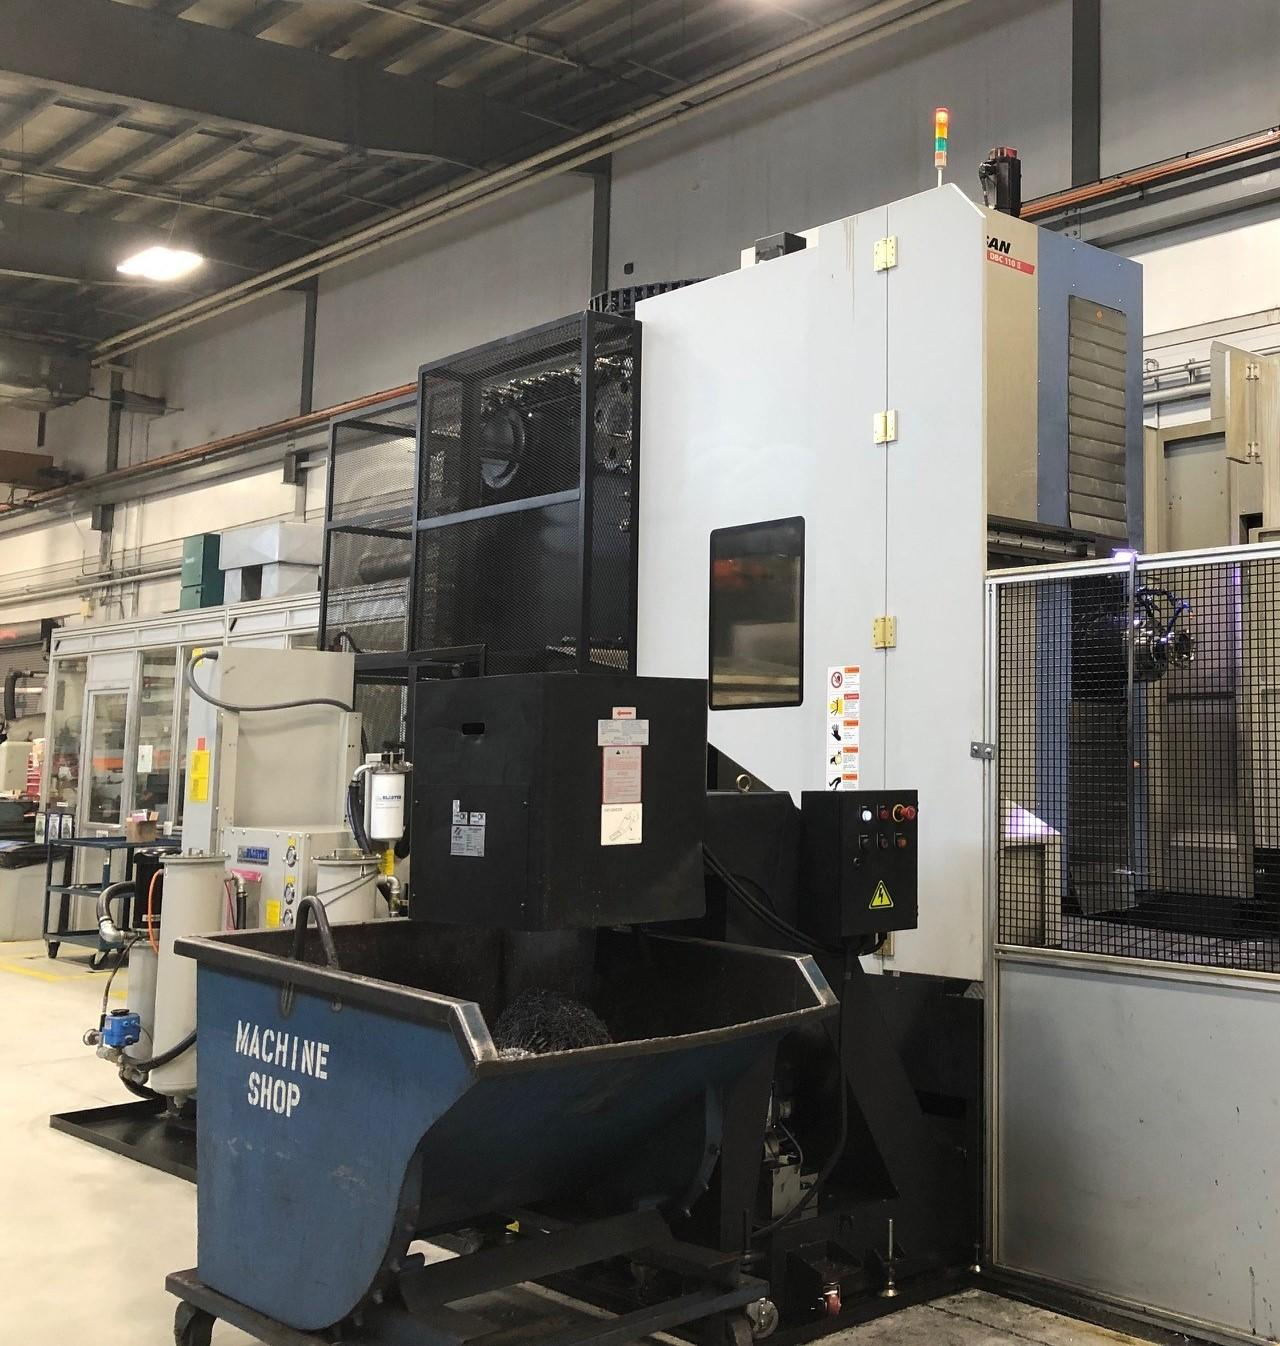 Doosan DBC II Series CNC Horizontal Boring Mill With High Speed 4K Spindle